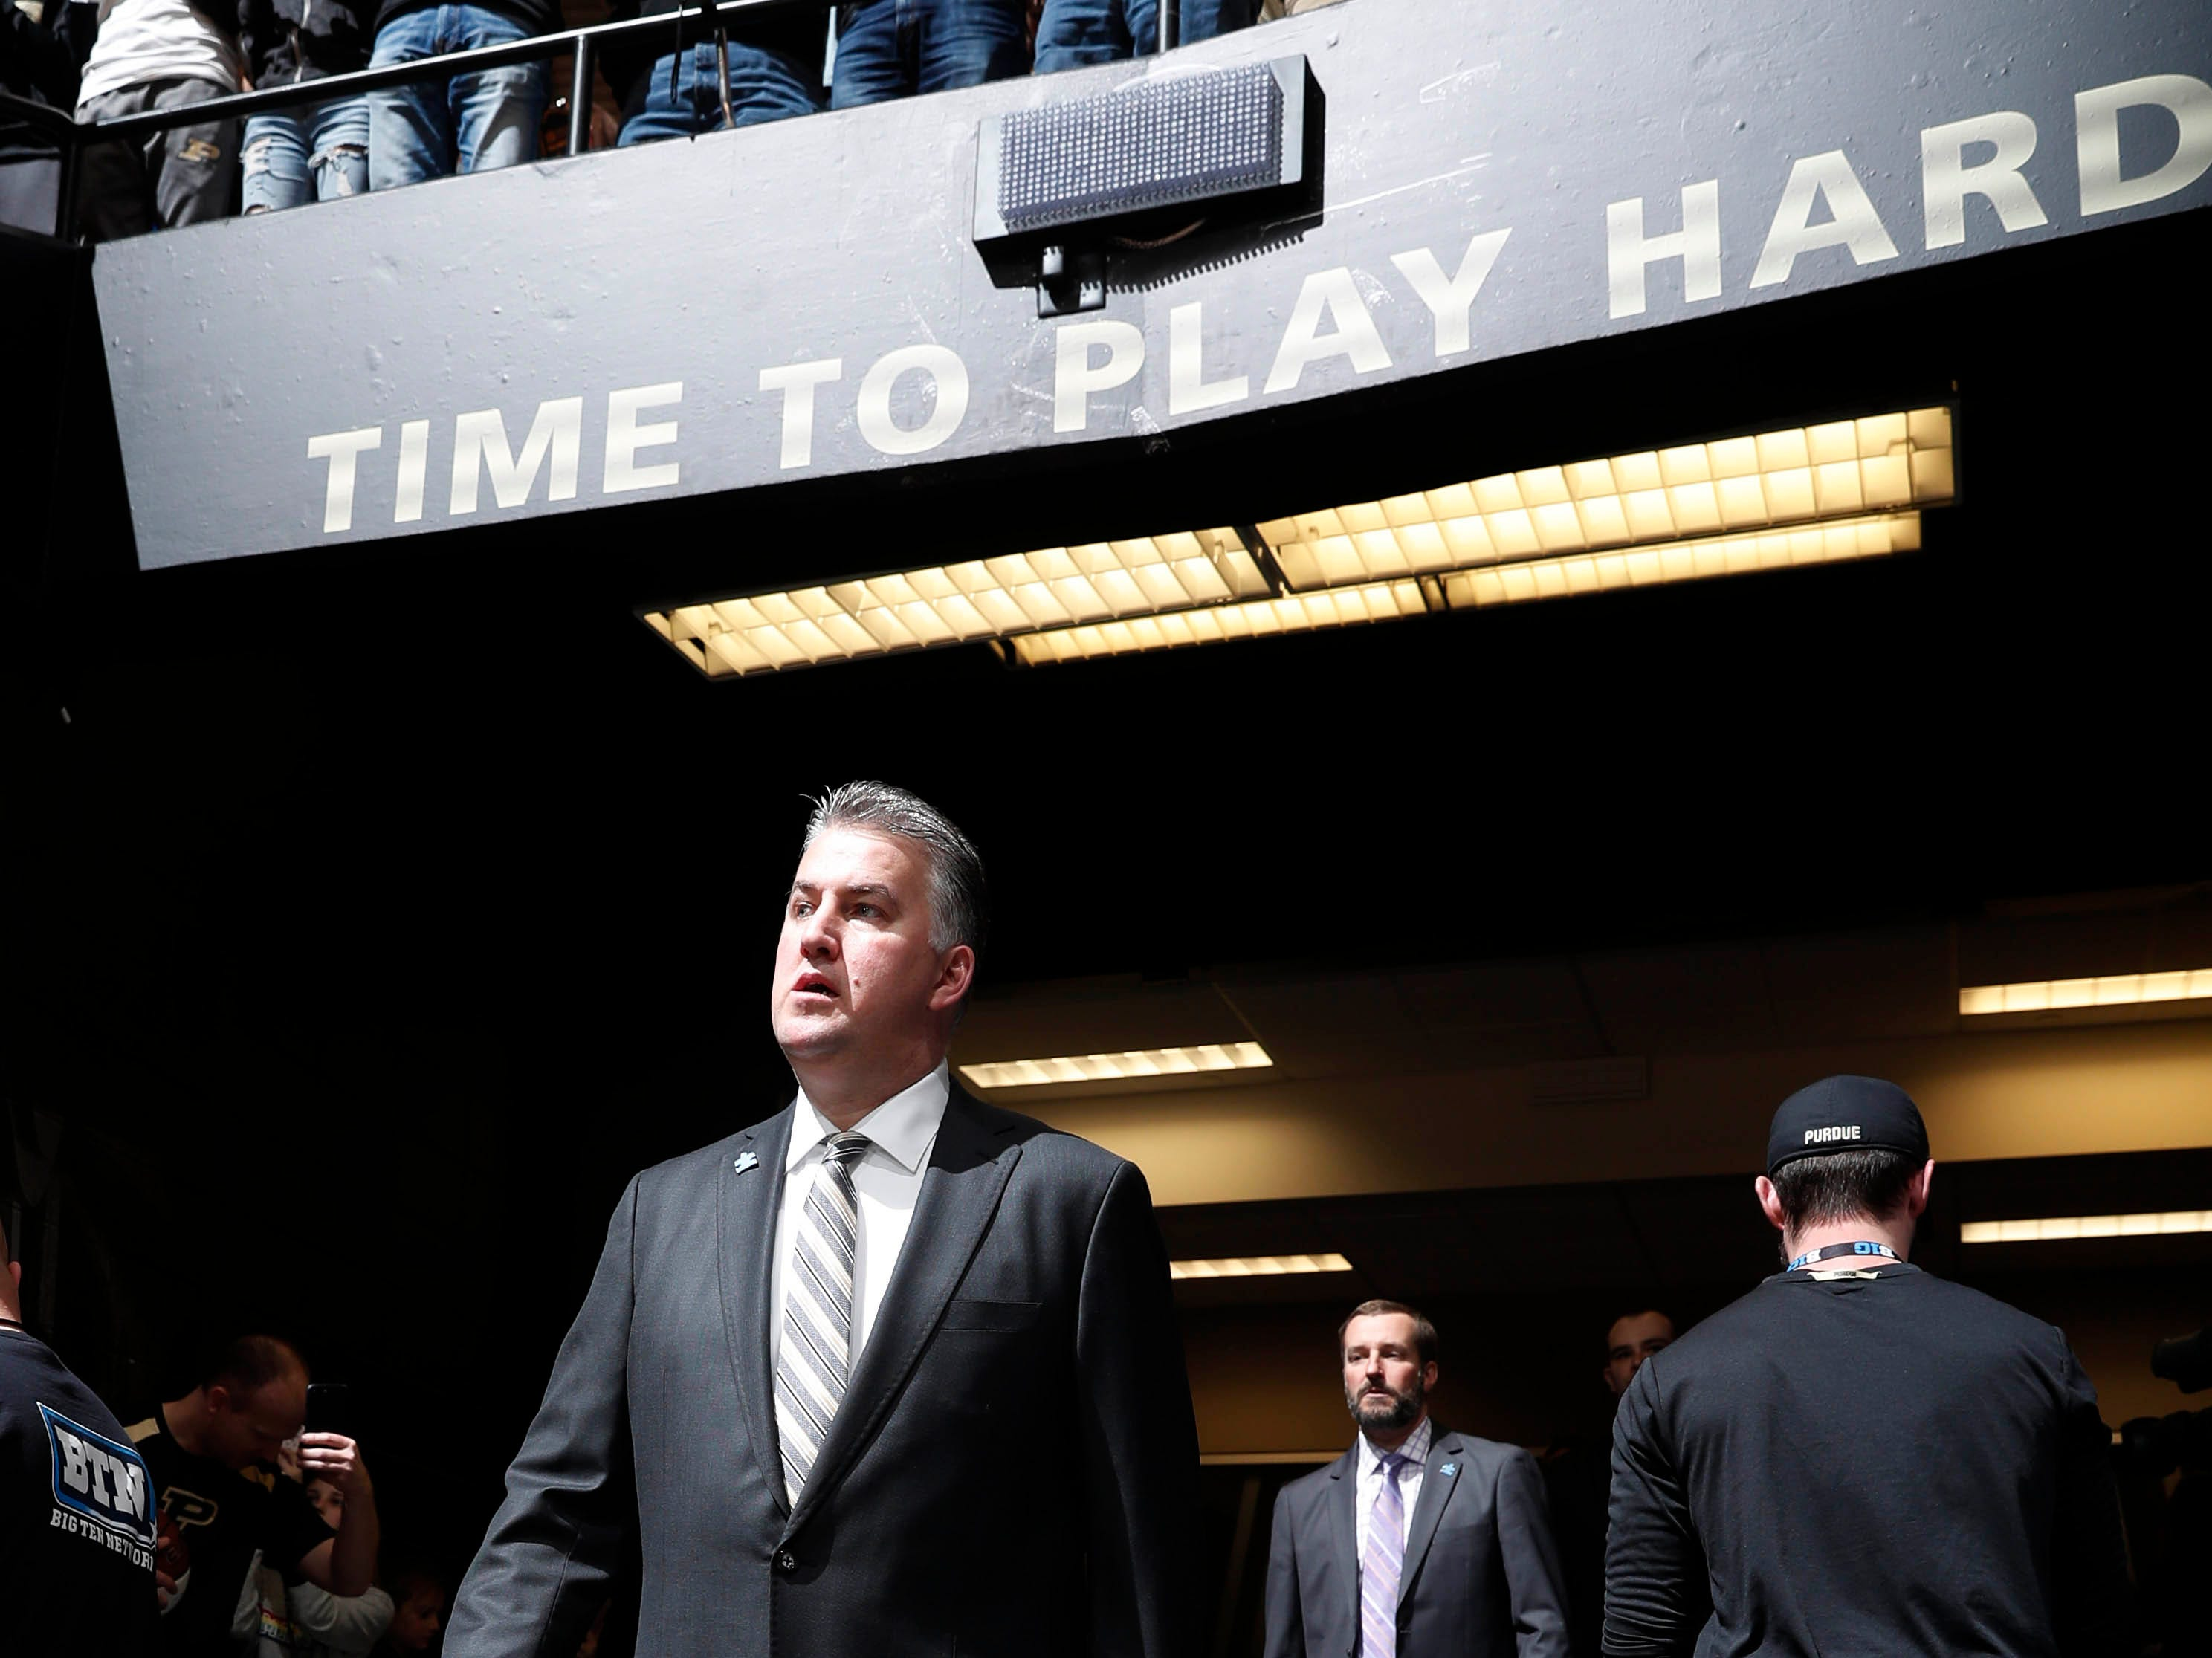 Feb 16, 2019; West Lafayette, IN, USA; Purdue Boilermakers coach Matt Painter walks through the tunnel to the playing floor before the game against the Penn State Nittany Lions at Mackey Arena. Mandatory Credit: Brian Spurlock-USA TODAY Sports